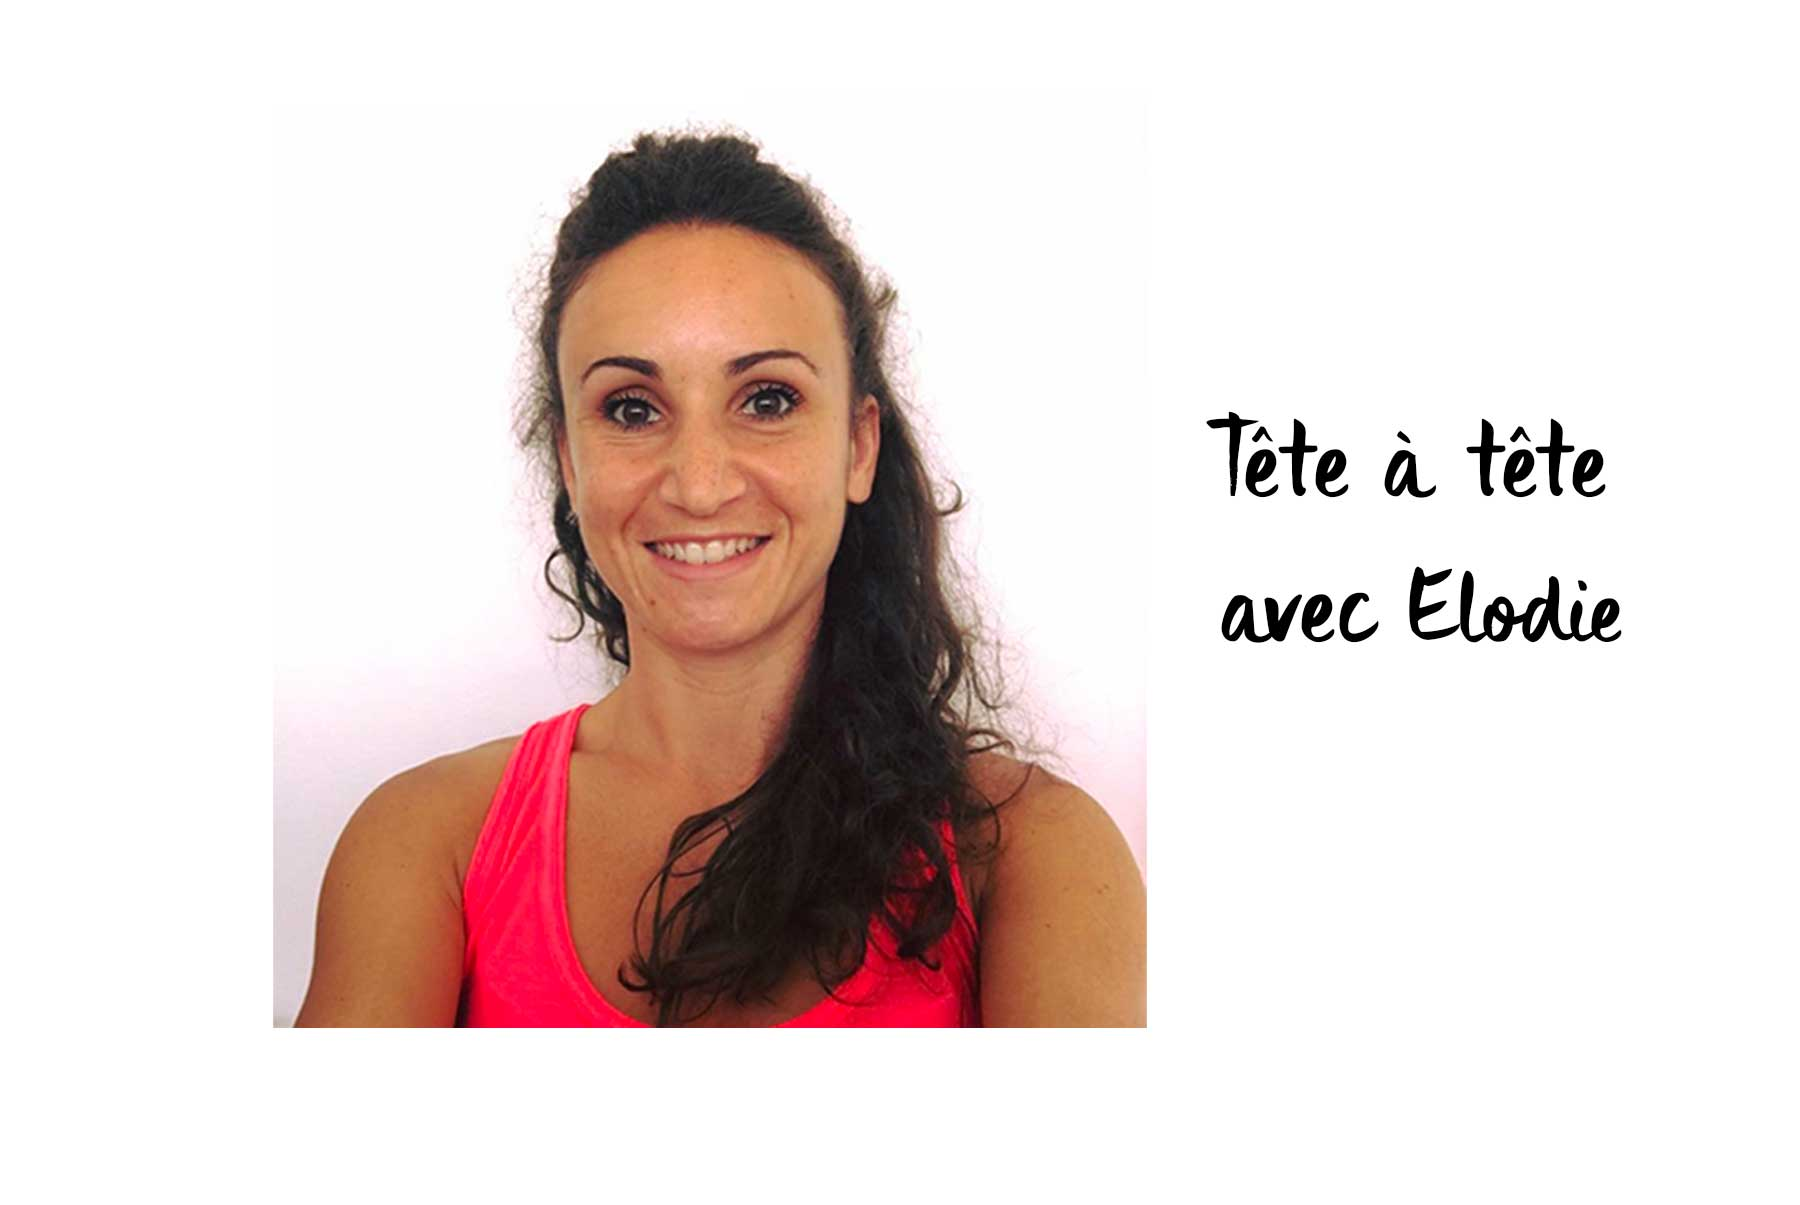 Elodie Pilates professeur Emma Paris Interview